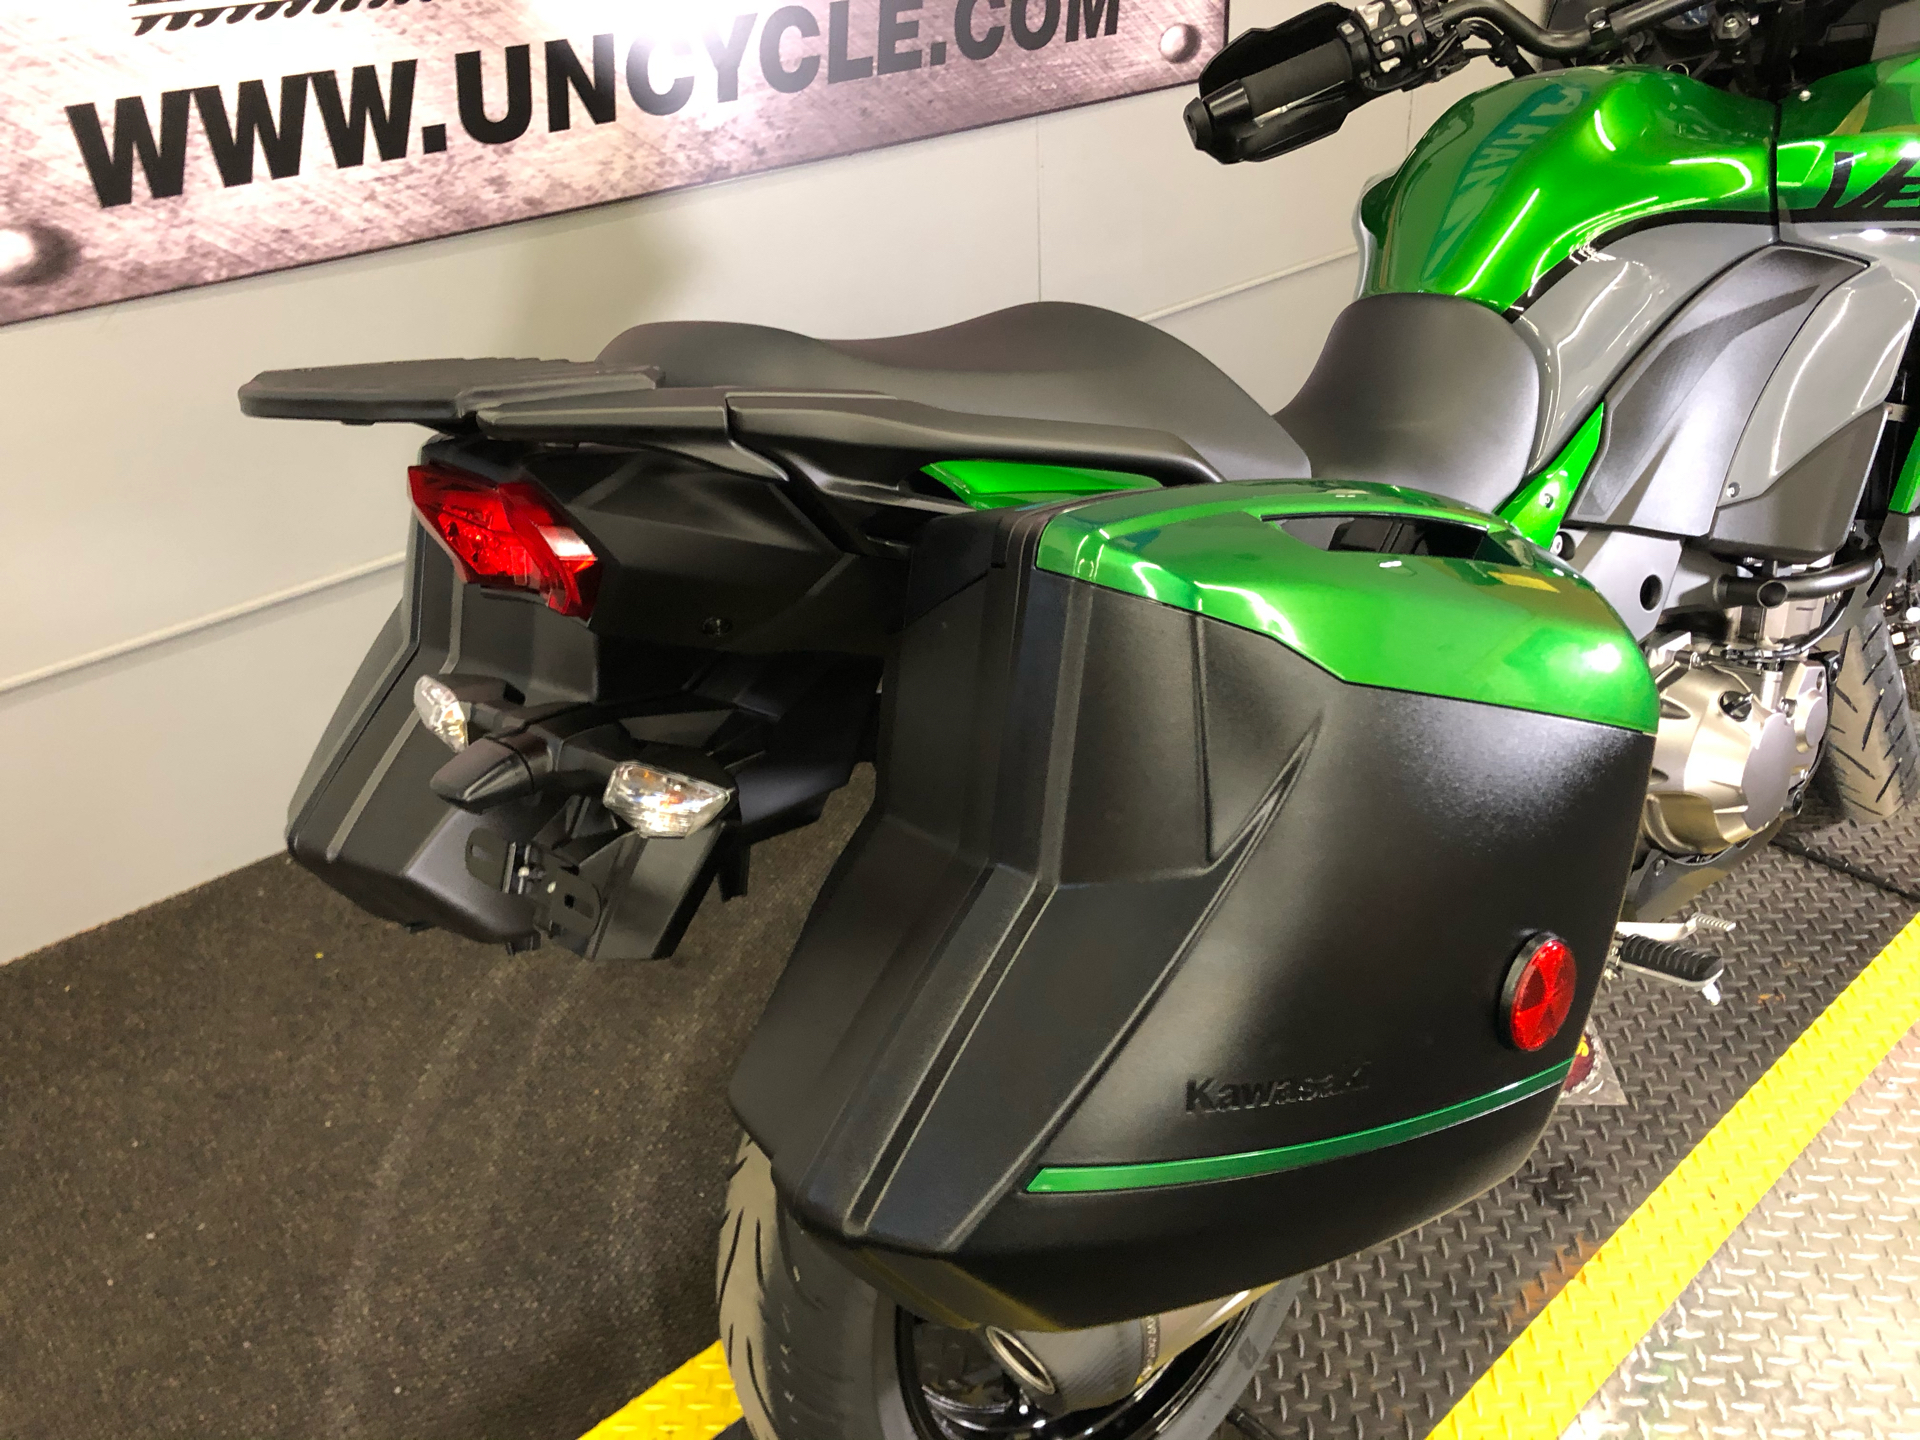 2020 Kawasaki Versys 1000 SE LT+ in Tyrone, Pennsylvania - Photo 4